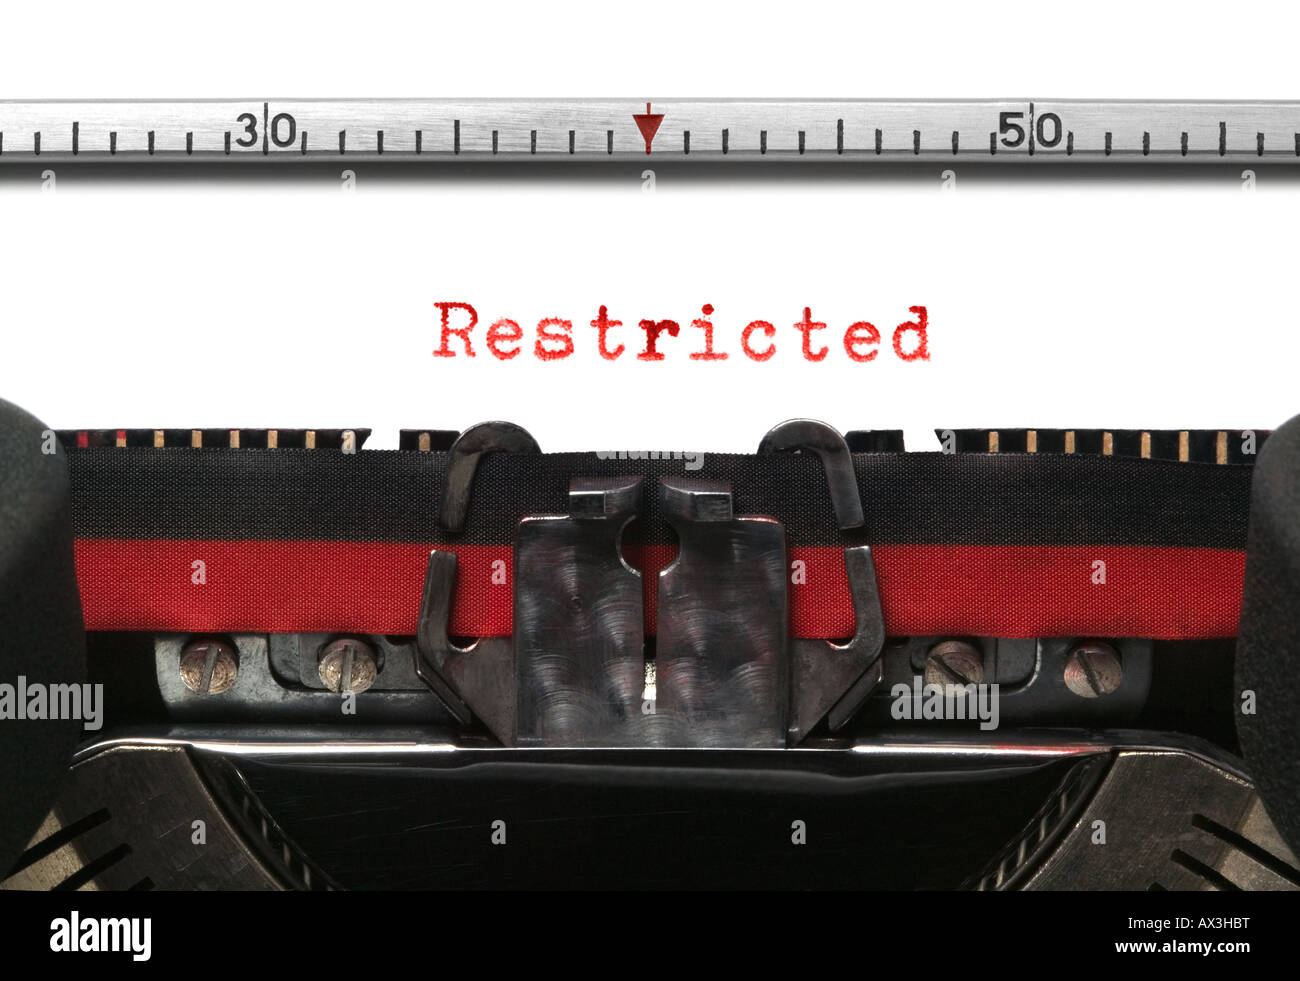 Restricted on an old typewriter in genuine red typescript - Stock Image